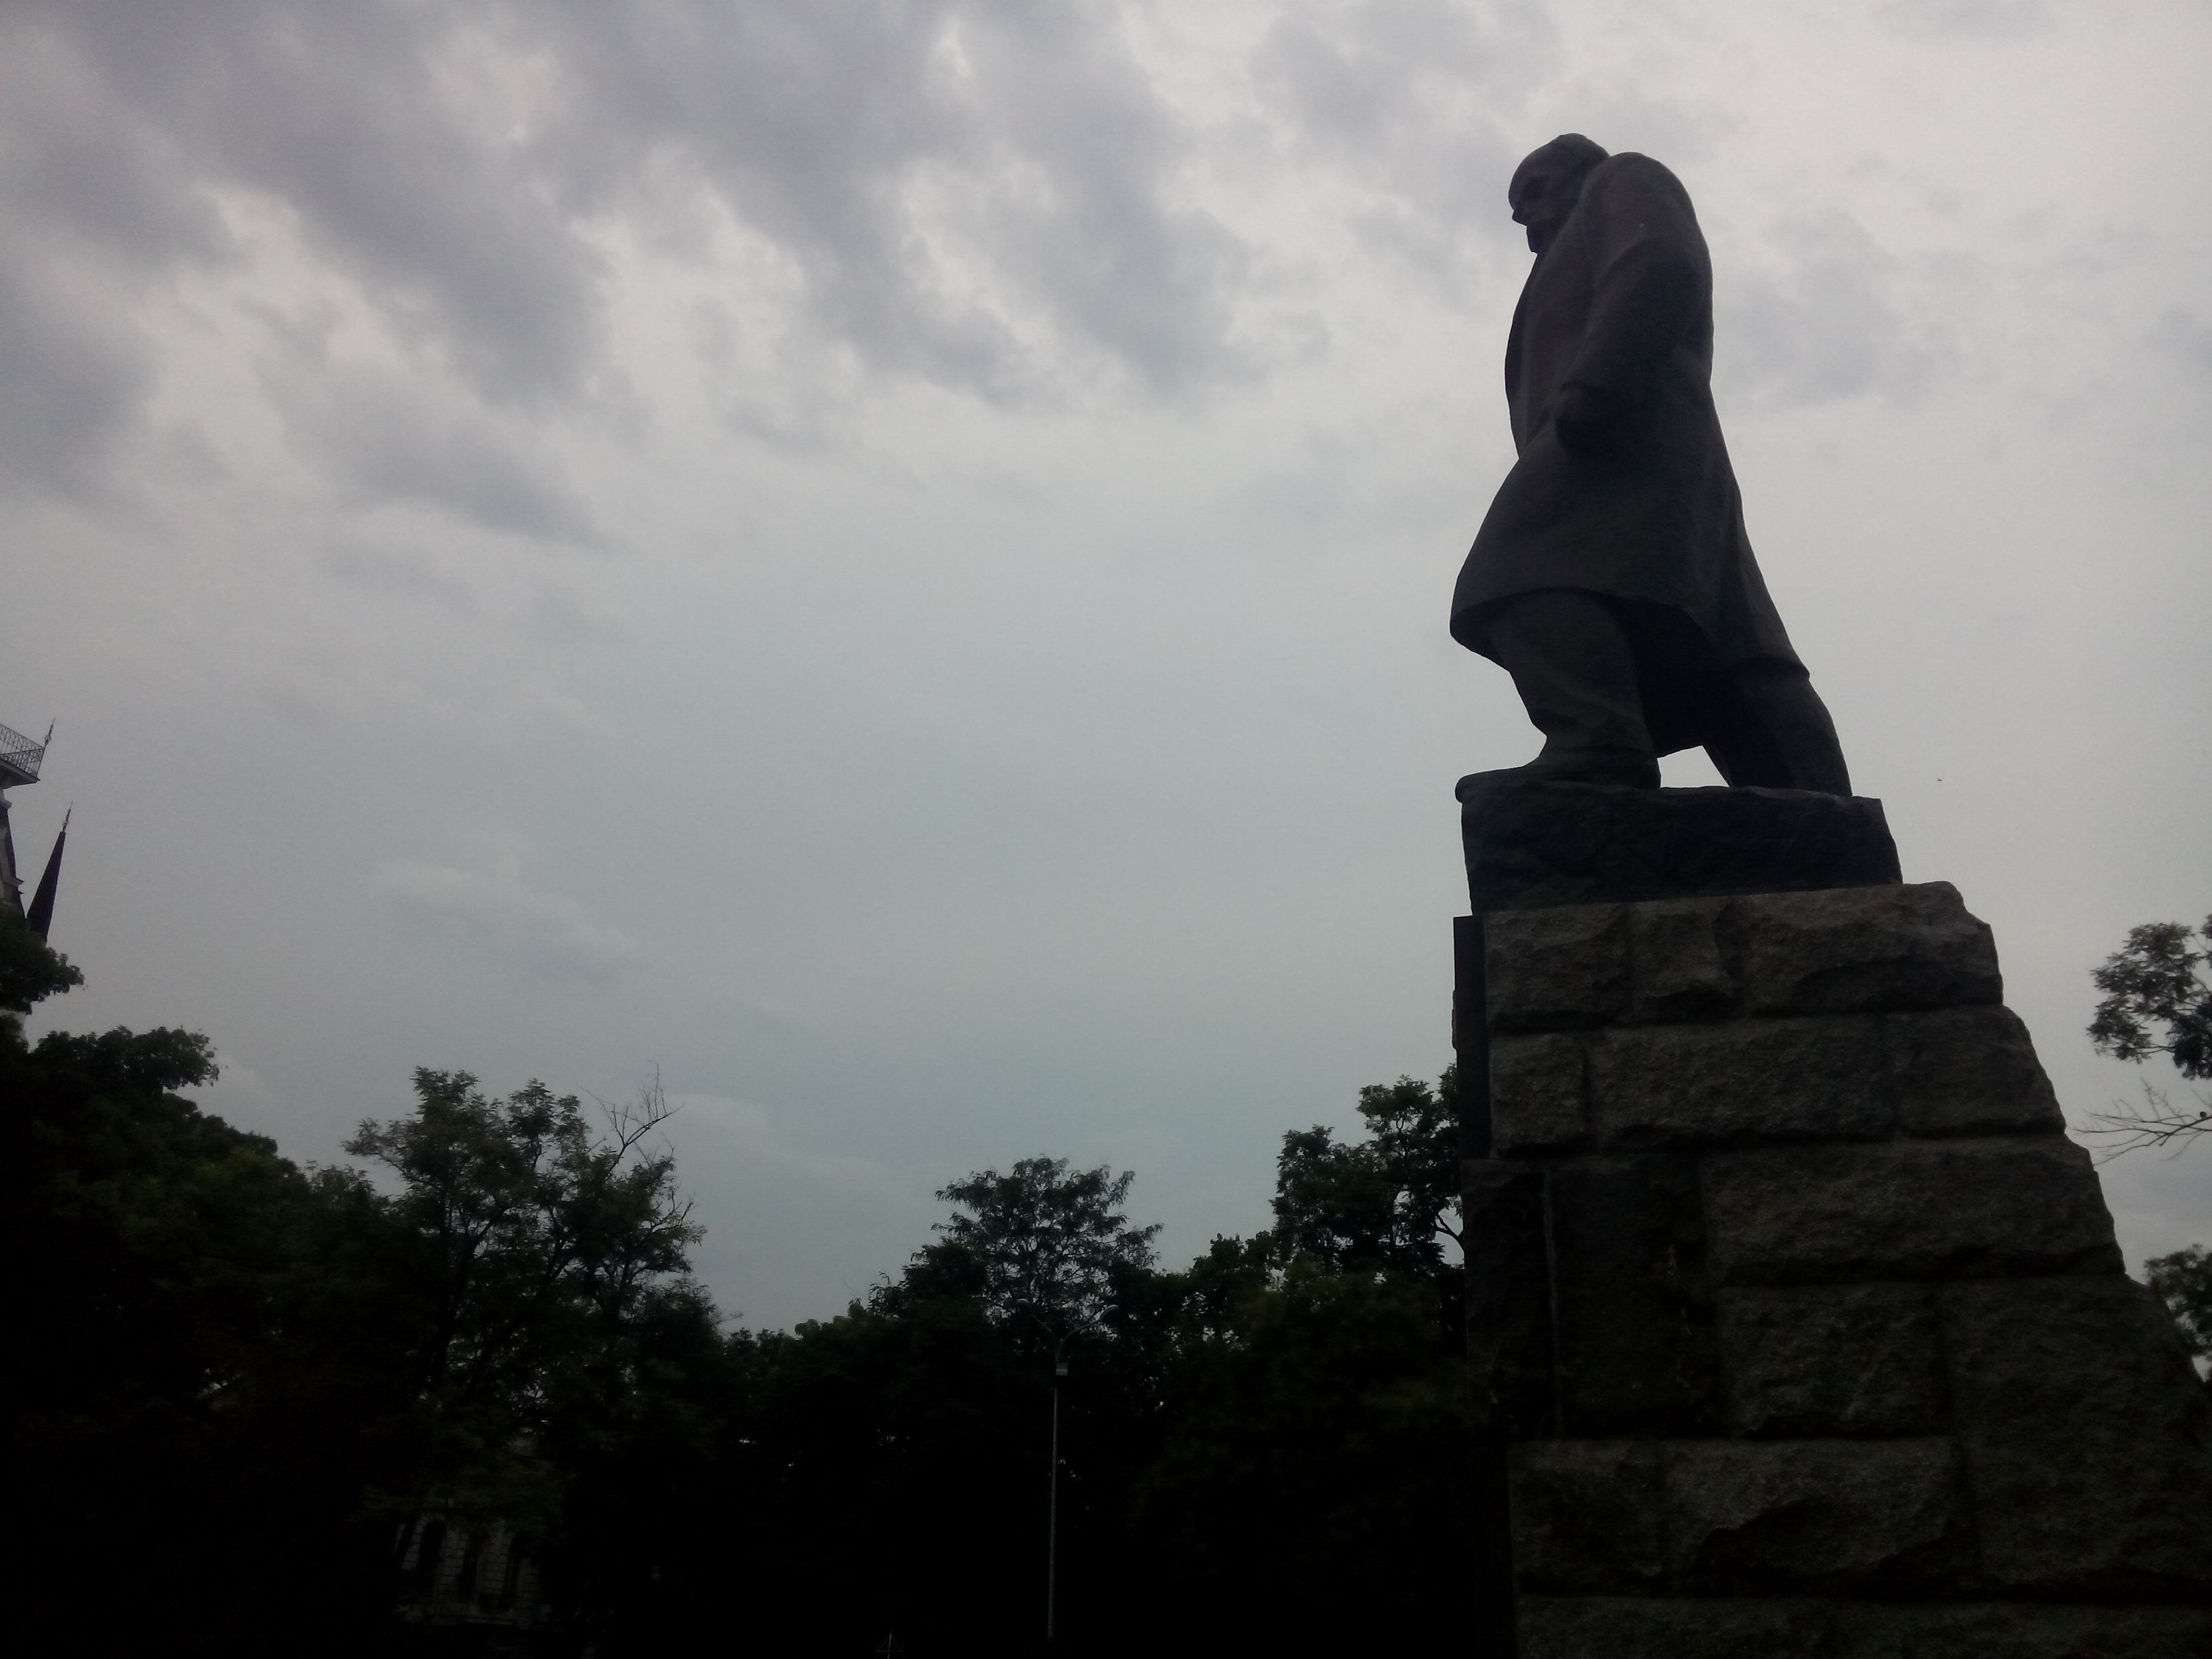 A silhouette of a tall statue of a man from the side